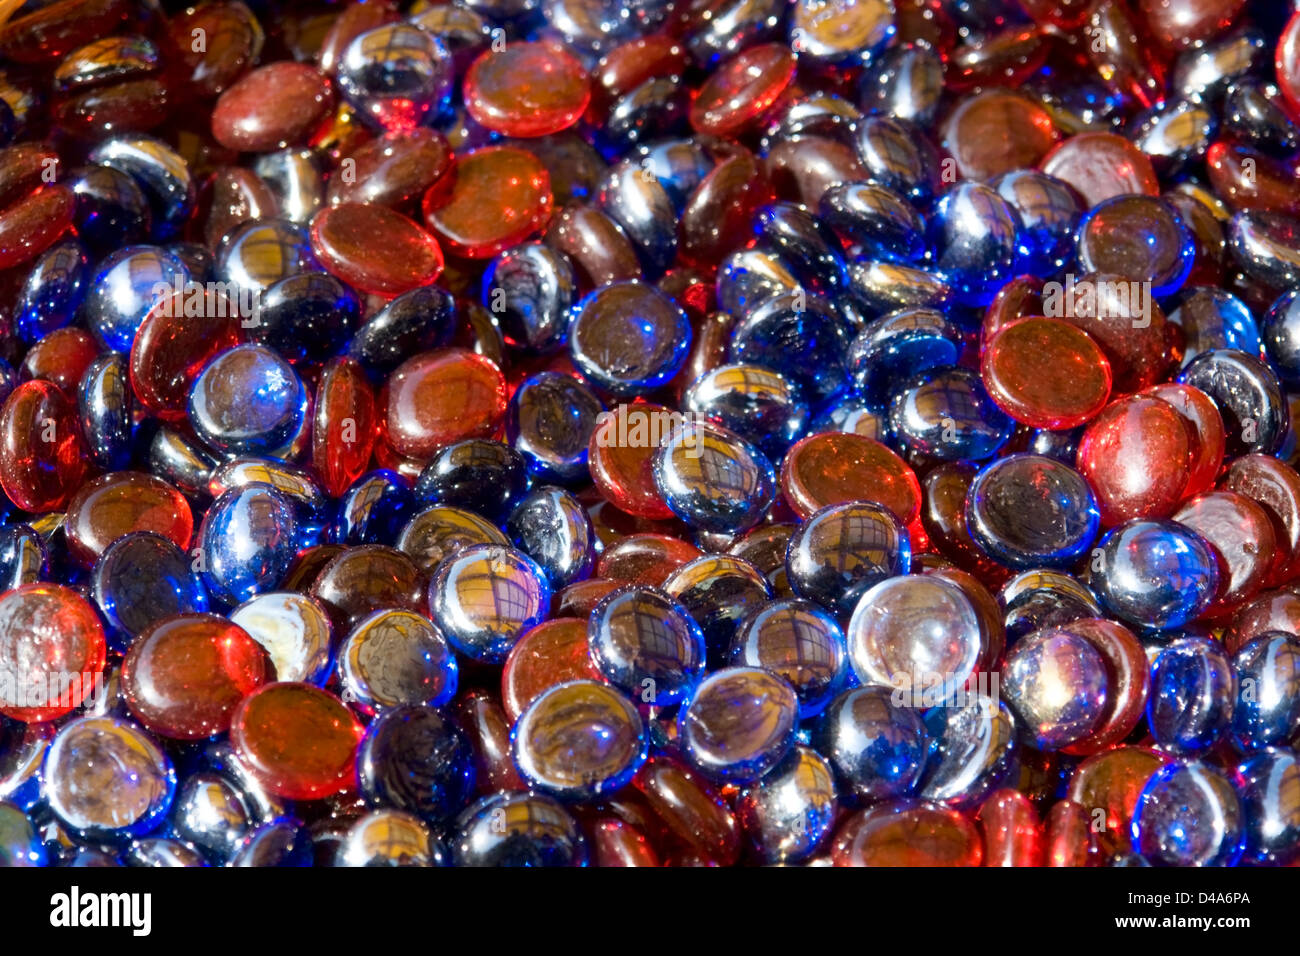 Full frame abstract background with lots of colorful translucent full frame abstract background with lots of colorful translucent glass beads jeuxipadfo Choice Image